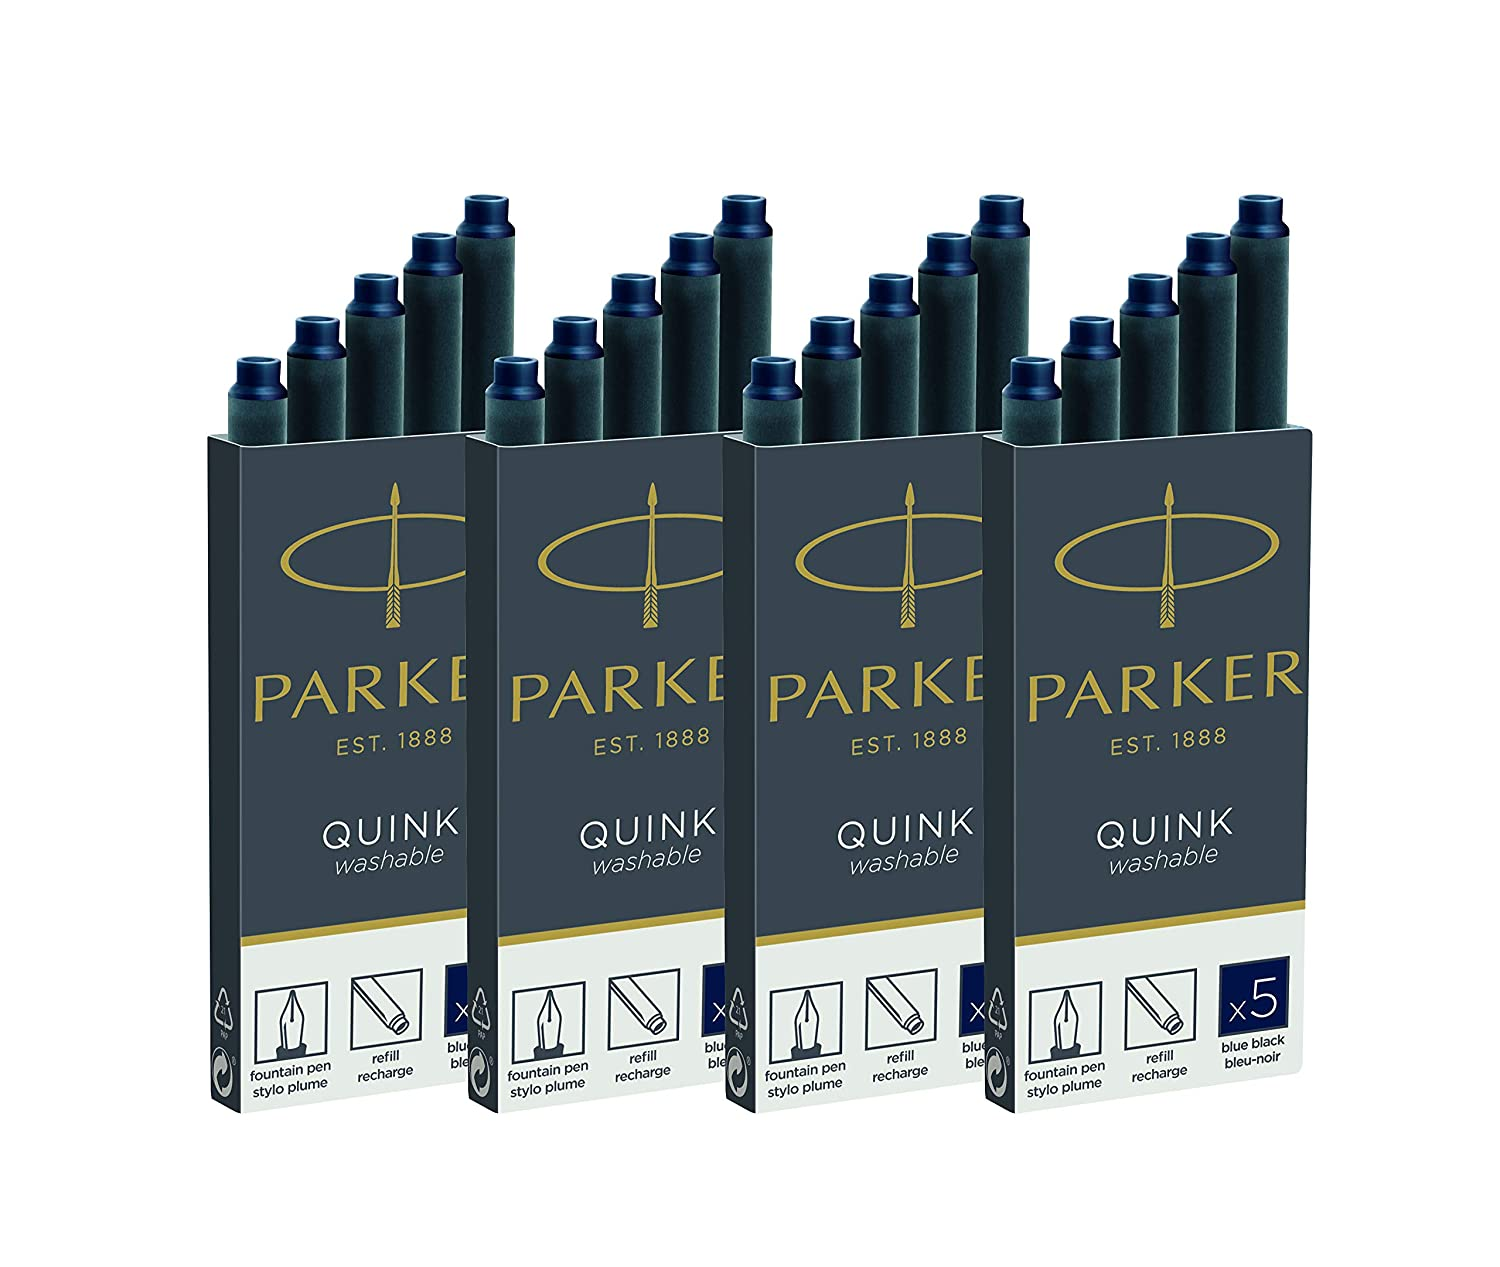 20 pezzi Cartucce per inchiostro 4 x 5 Parker 1950384 Quink Ink Ink